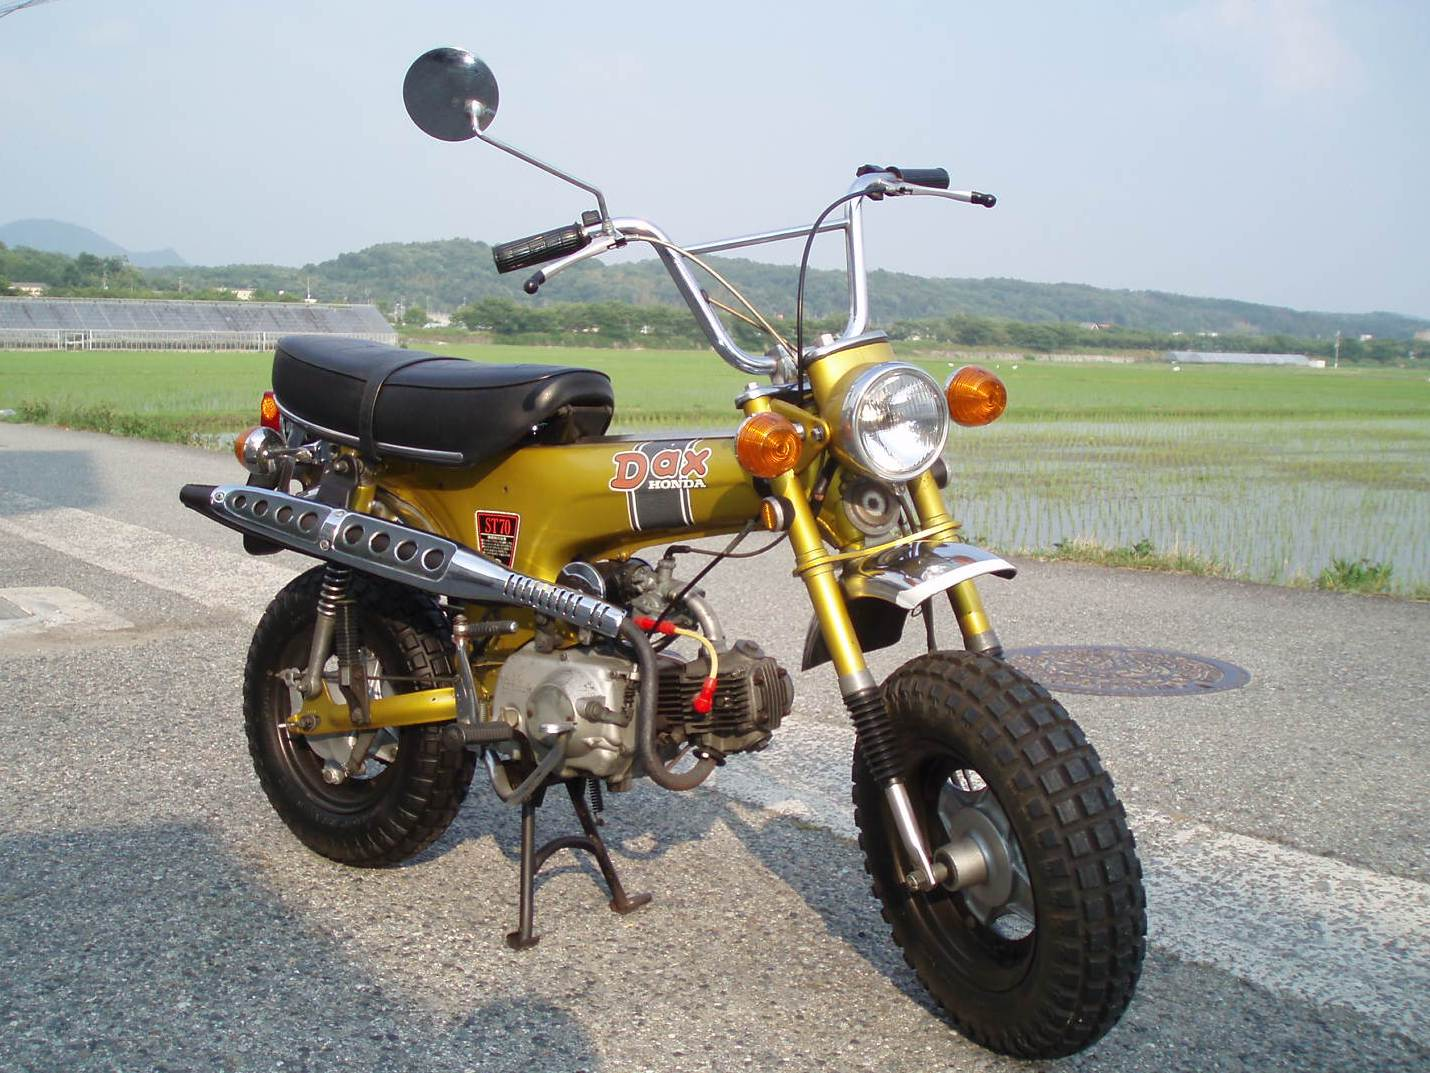 '72DAX70 4サイクルキャブレター   SOLD OUT